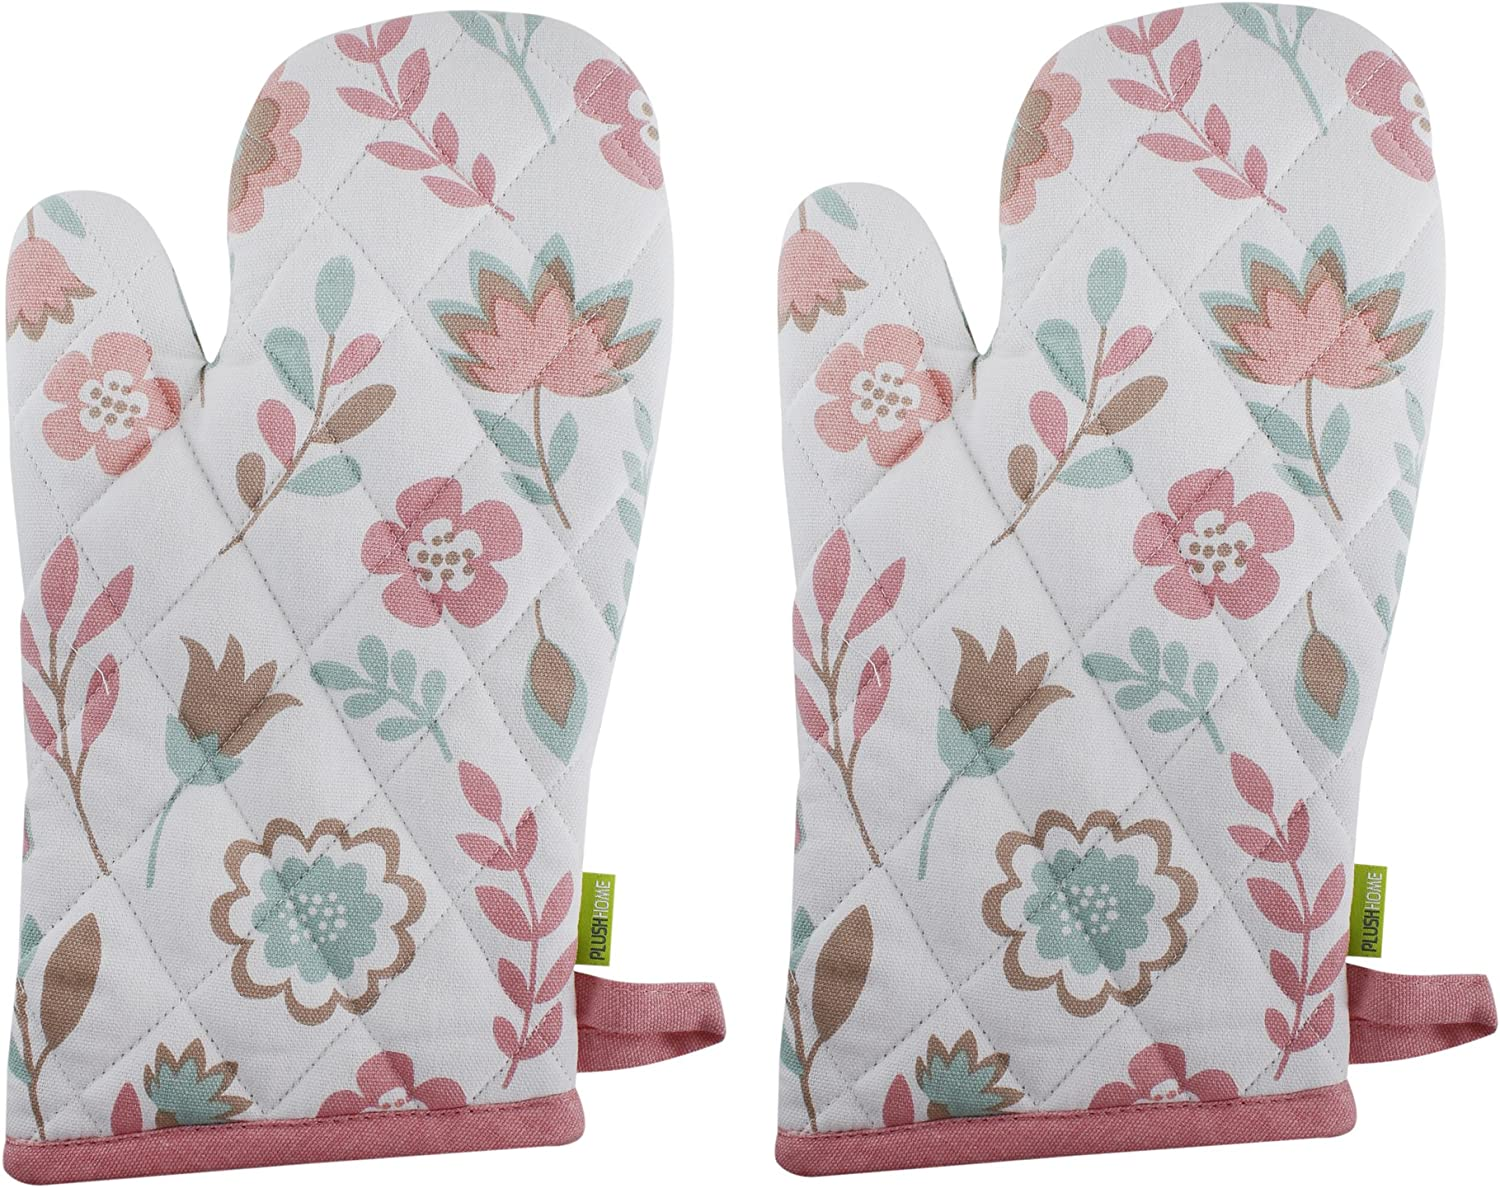 """Set of 2 Oven Mitts, 100% Cotton of Size 7""""X12 Inch, Eco-Friendly & Safe, Pink Spring Fields Design for Kitchen"""